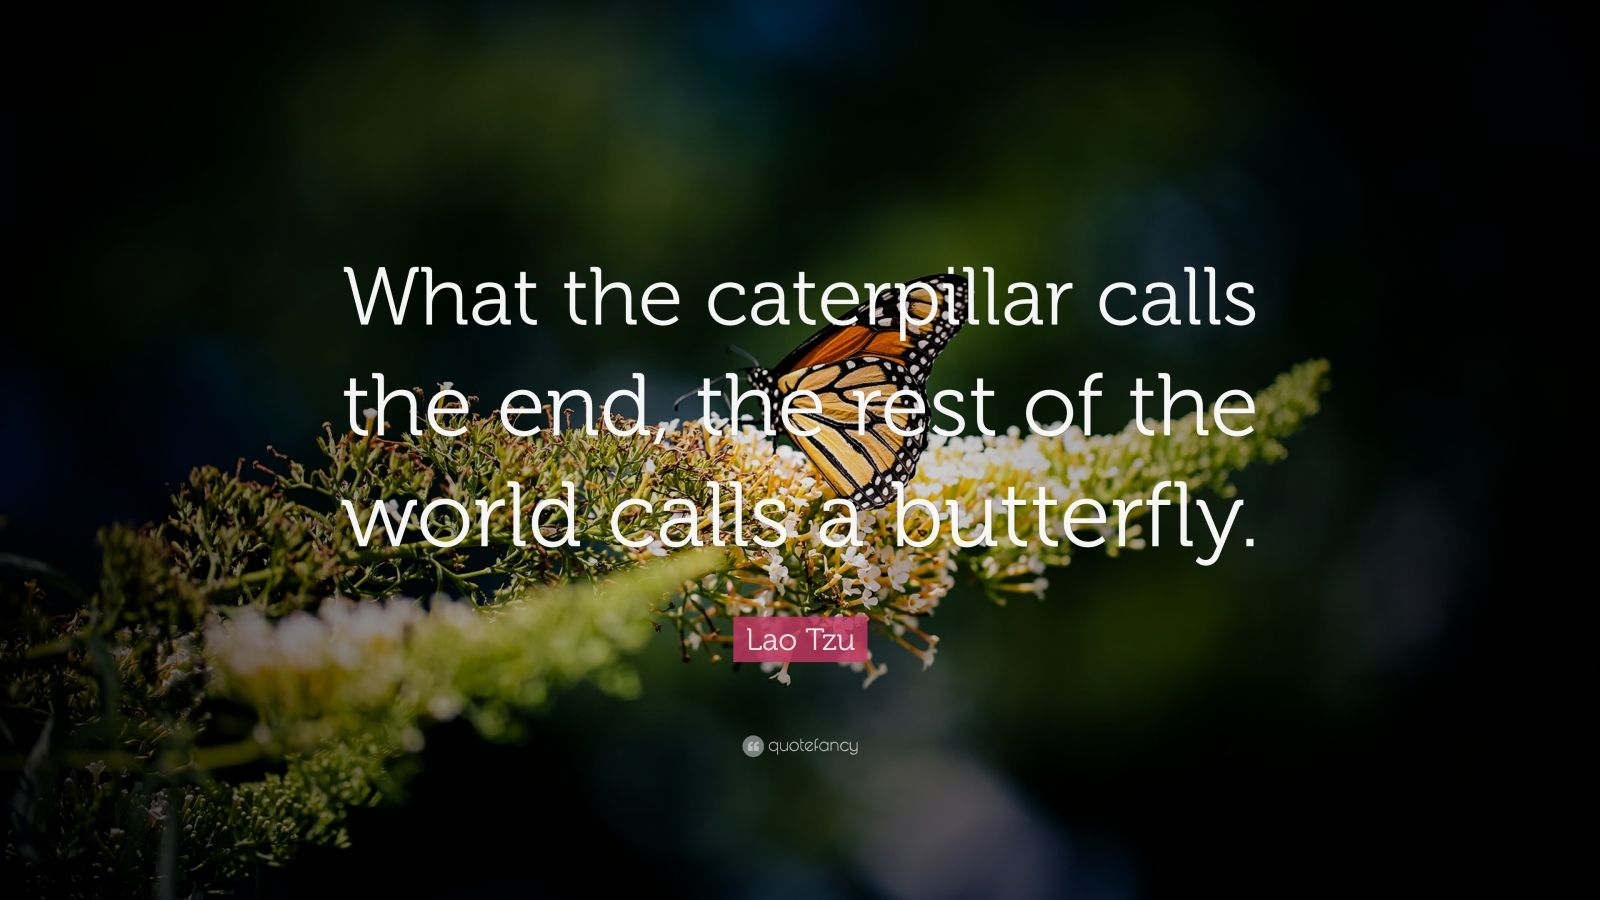 Butterfly and caterpillar quotes